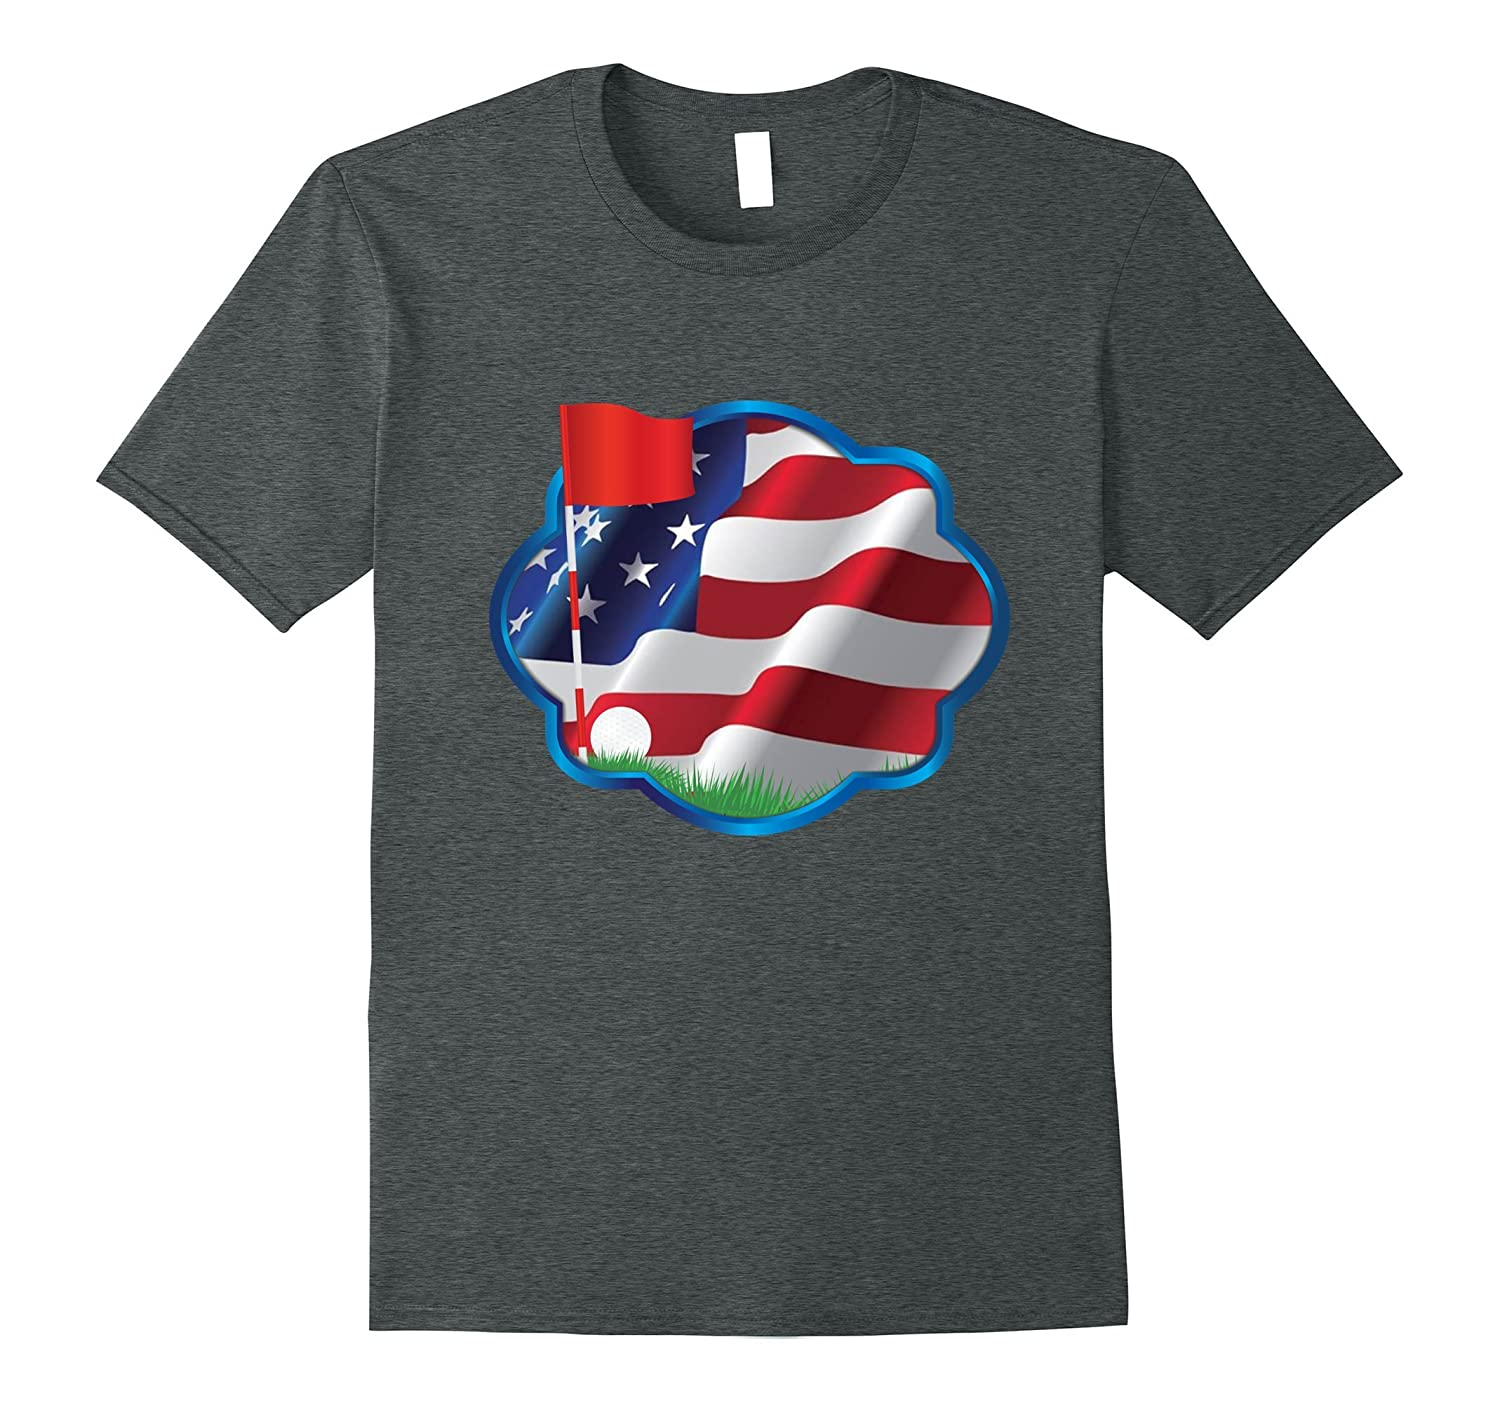 American Flag Golf Dad T-Shirt, July 4th – Father's Day Gift